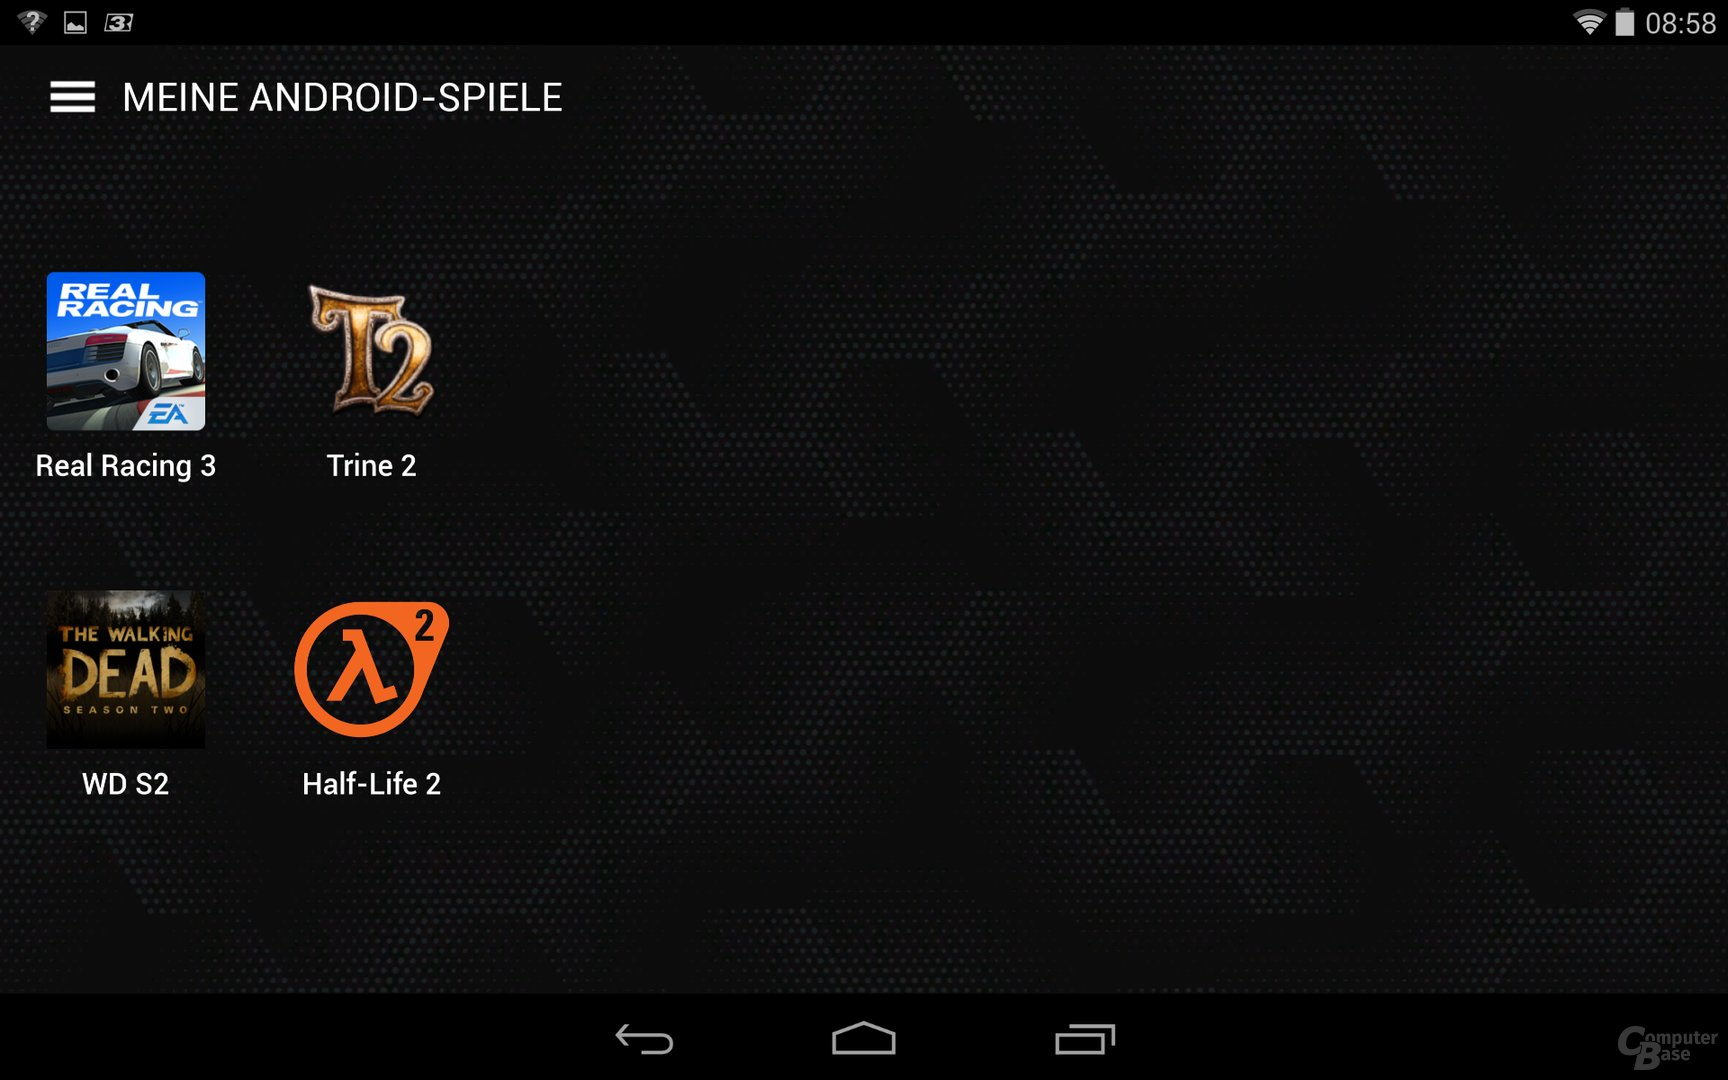 Nvidia Shield Tablet – Android-Spiele